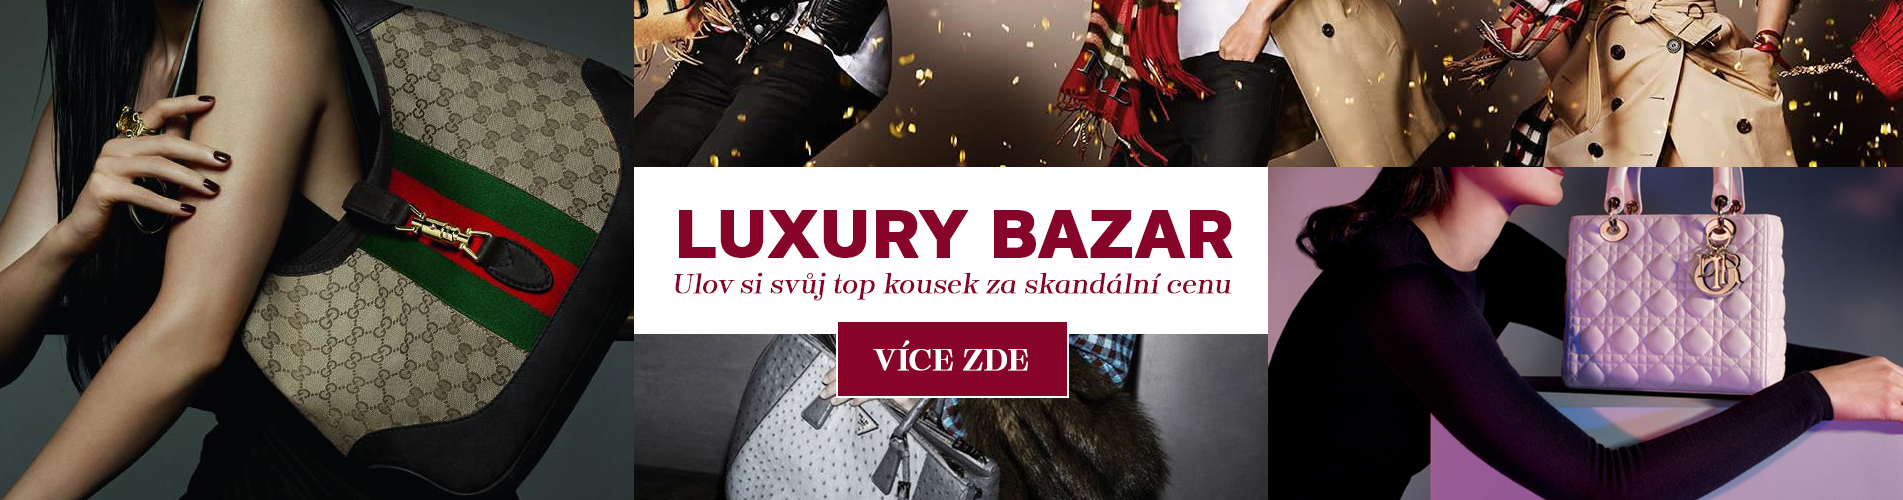 luxury bazar